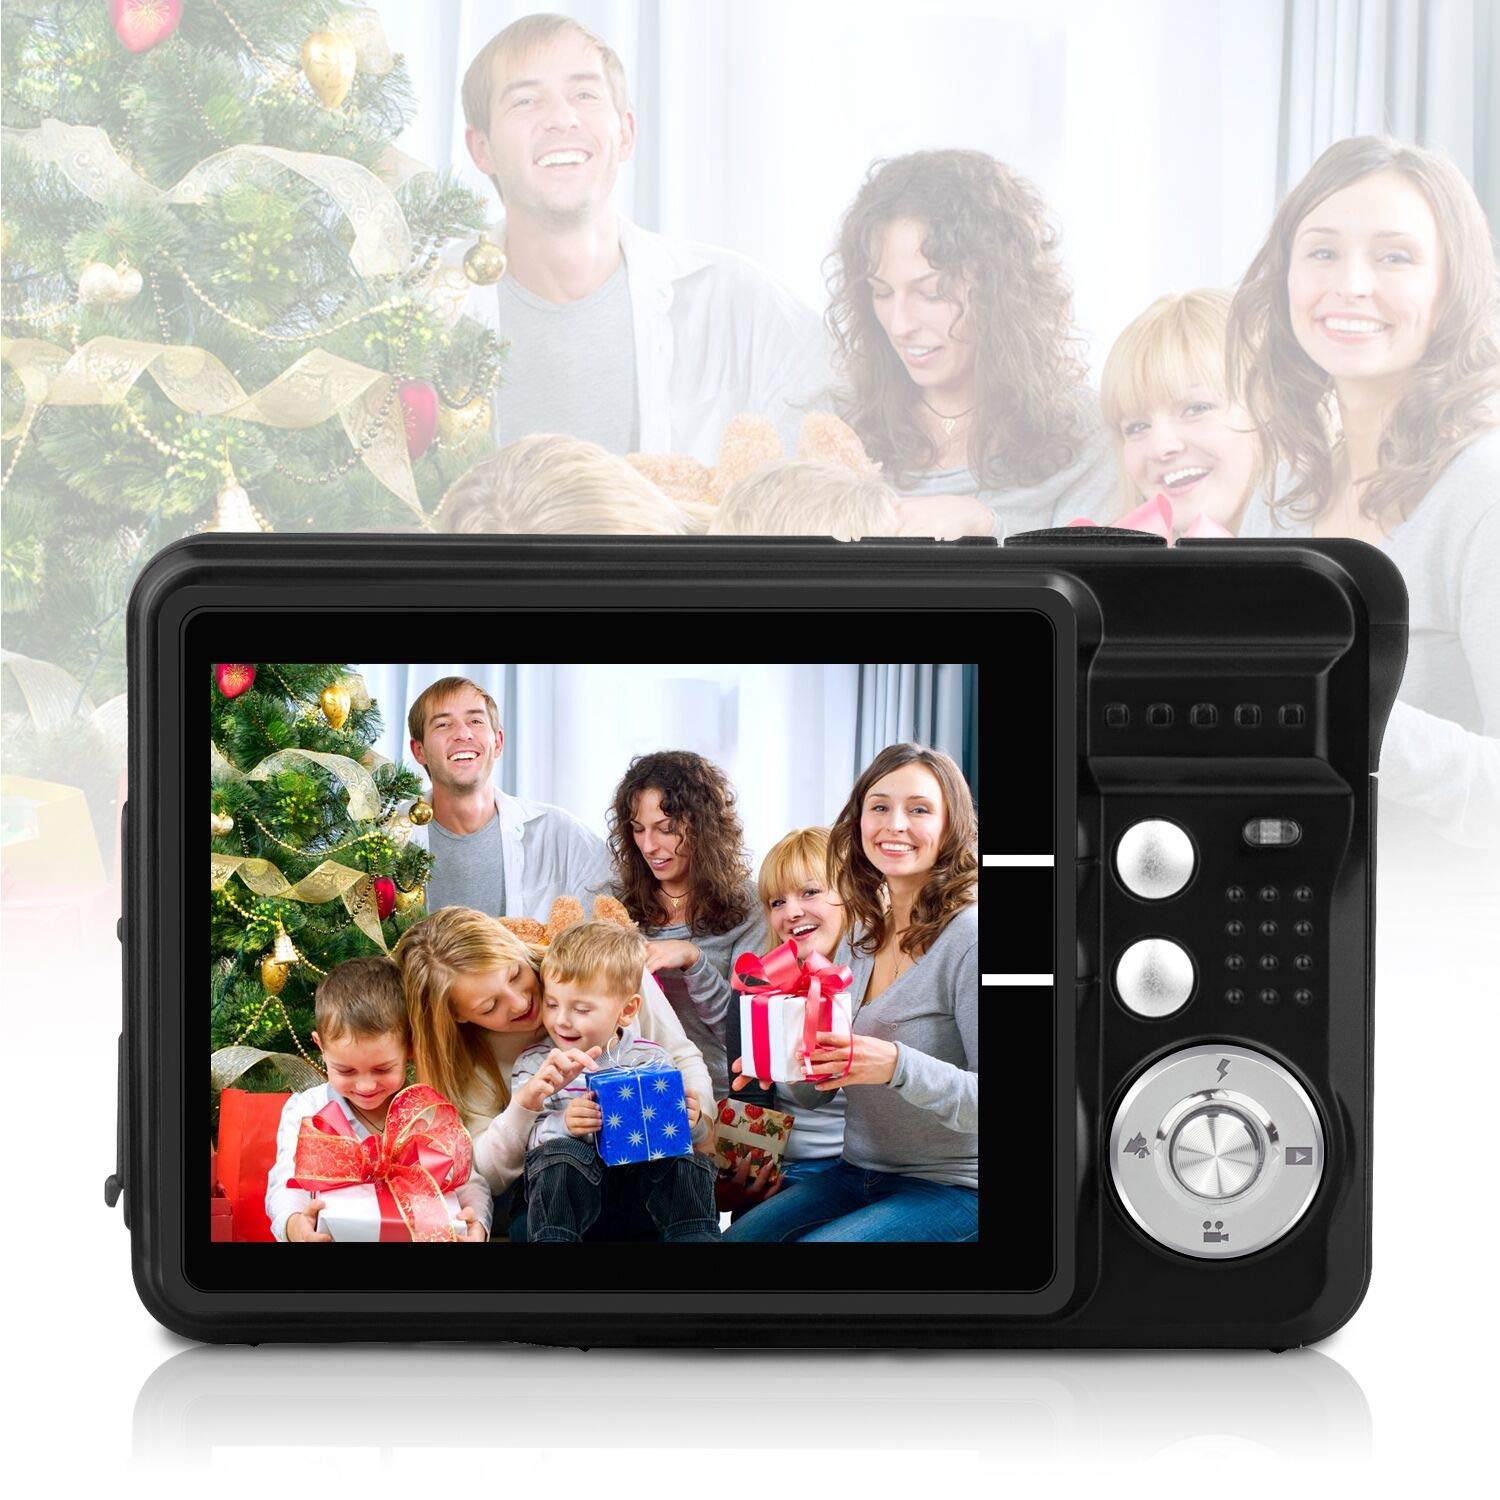 HD Mini Digital Video Camera,Point and Shoot Digital Video Cameras(Black)--Birthday&Christmas Present